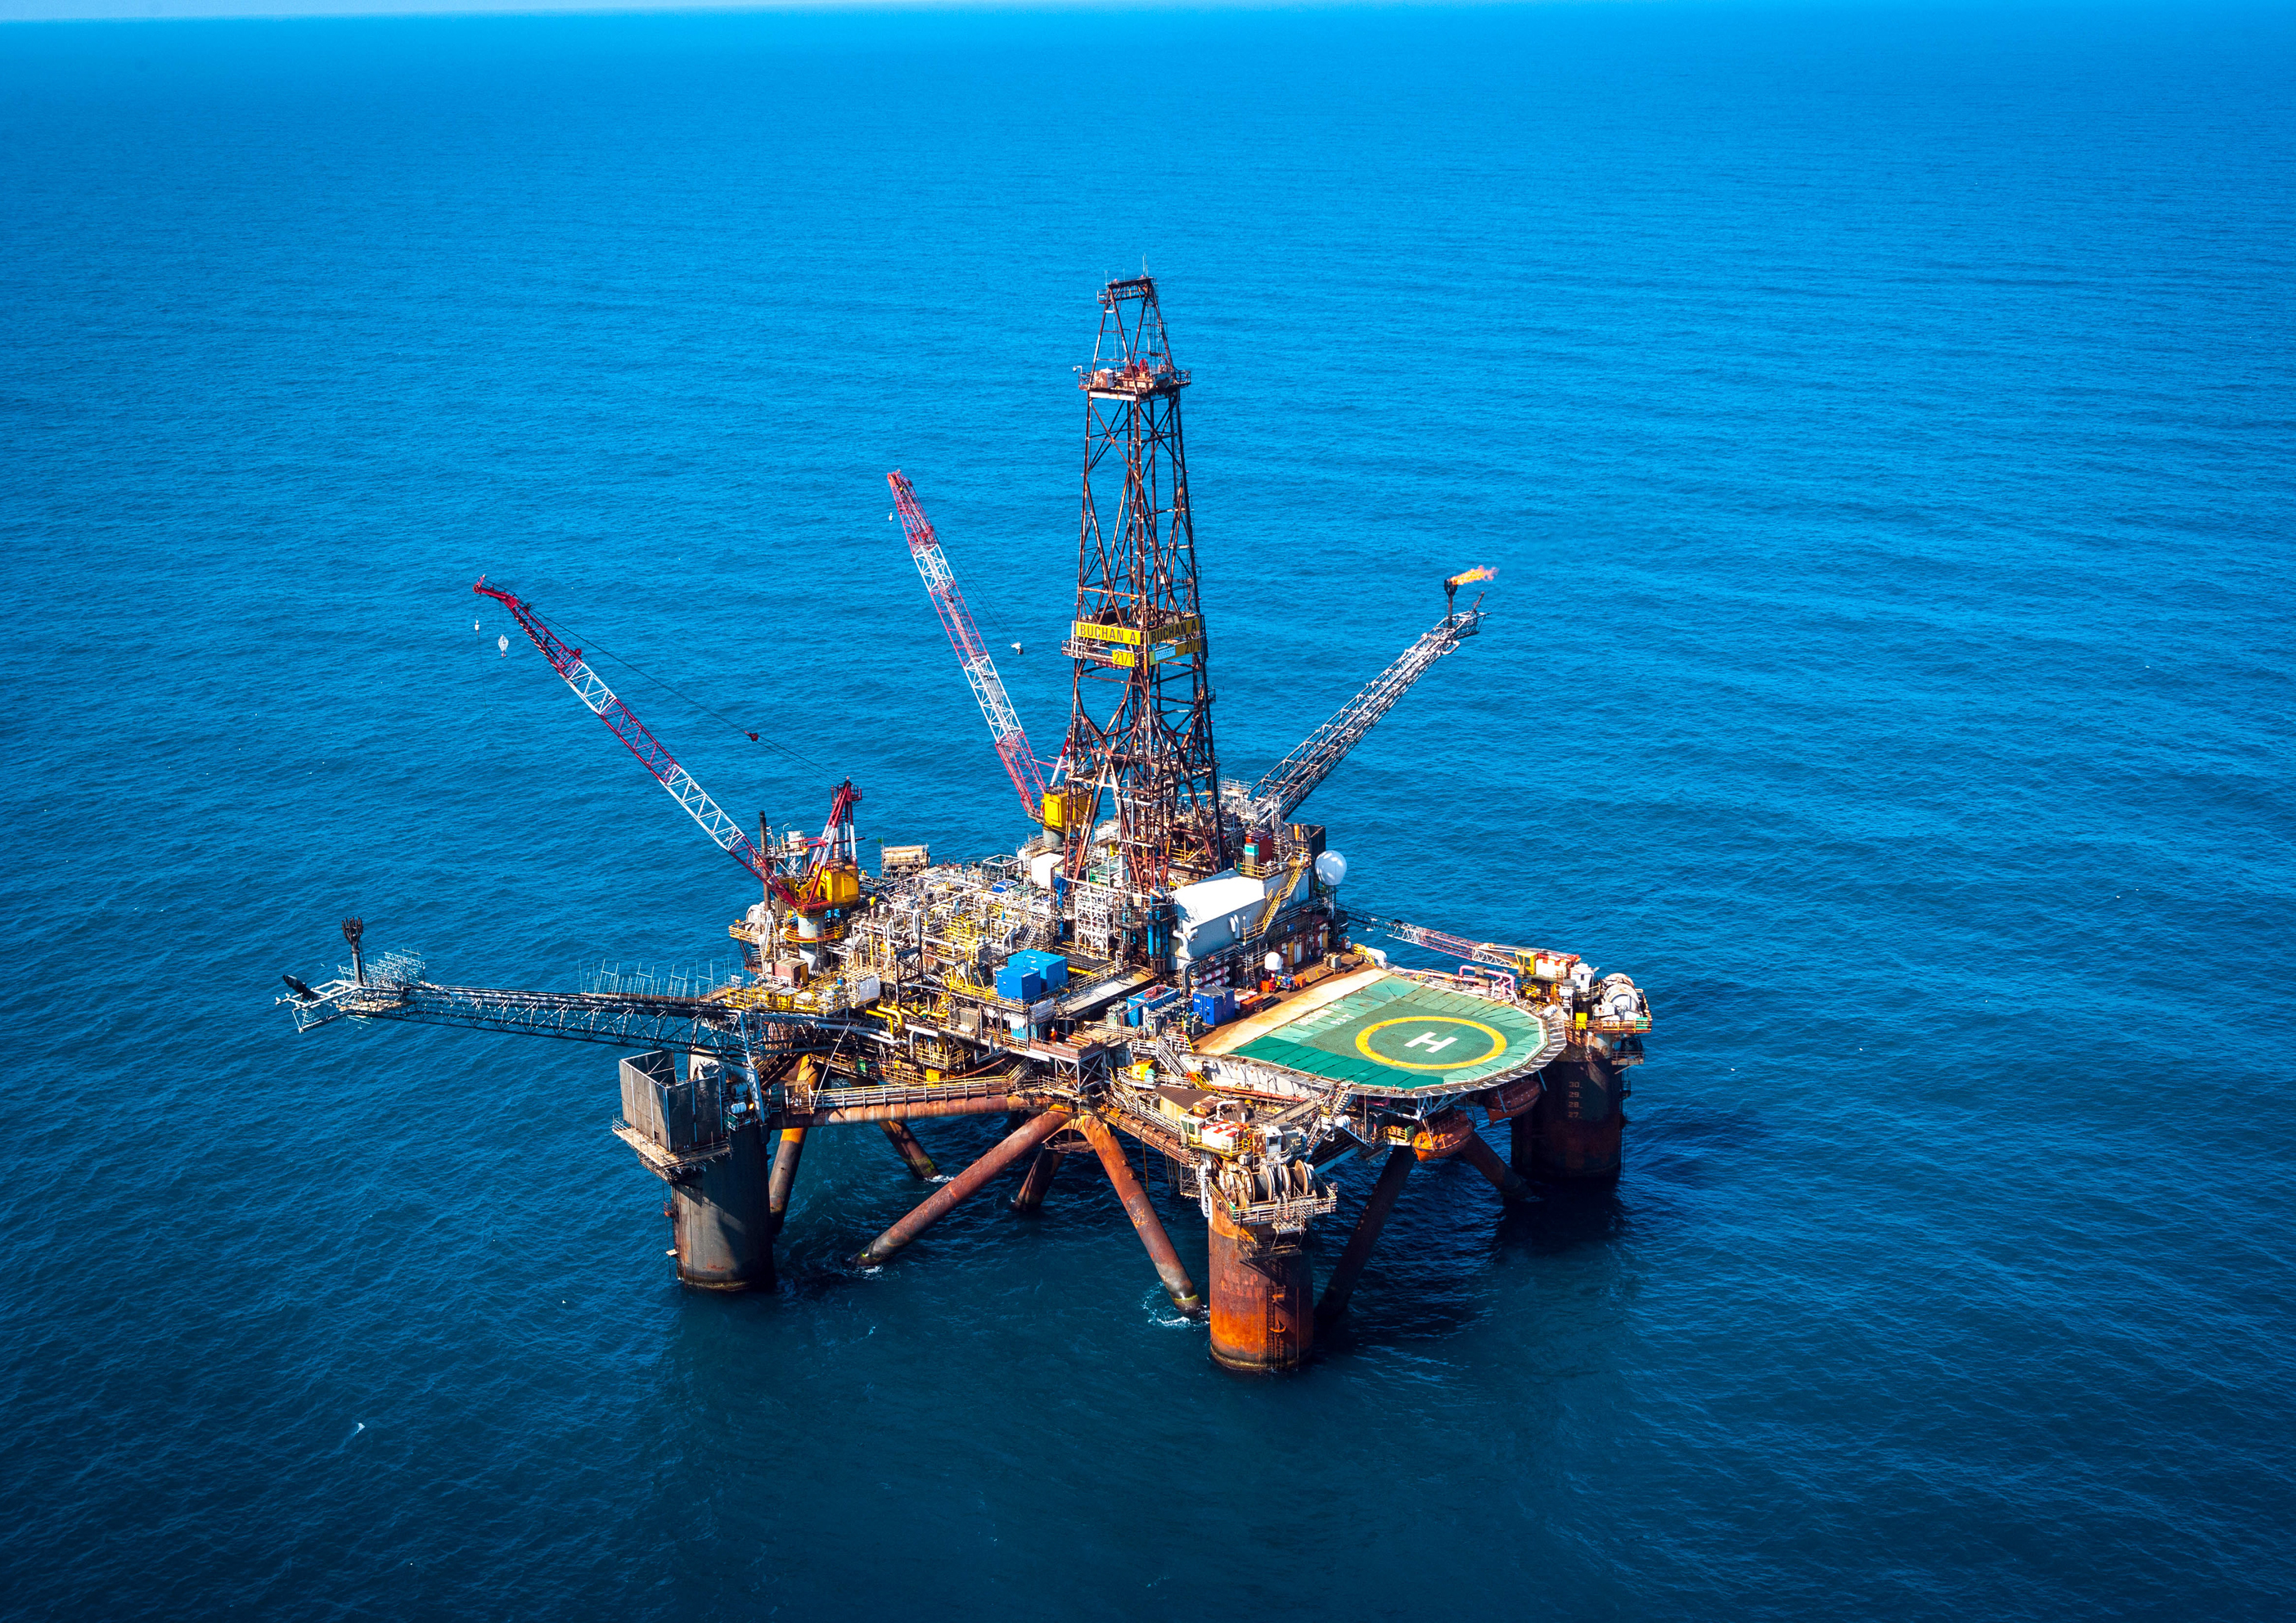 The Buchan Alpha rig has been taken to Shetland for decommissioning.